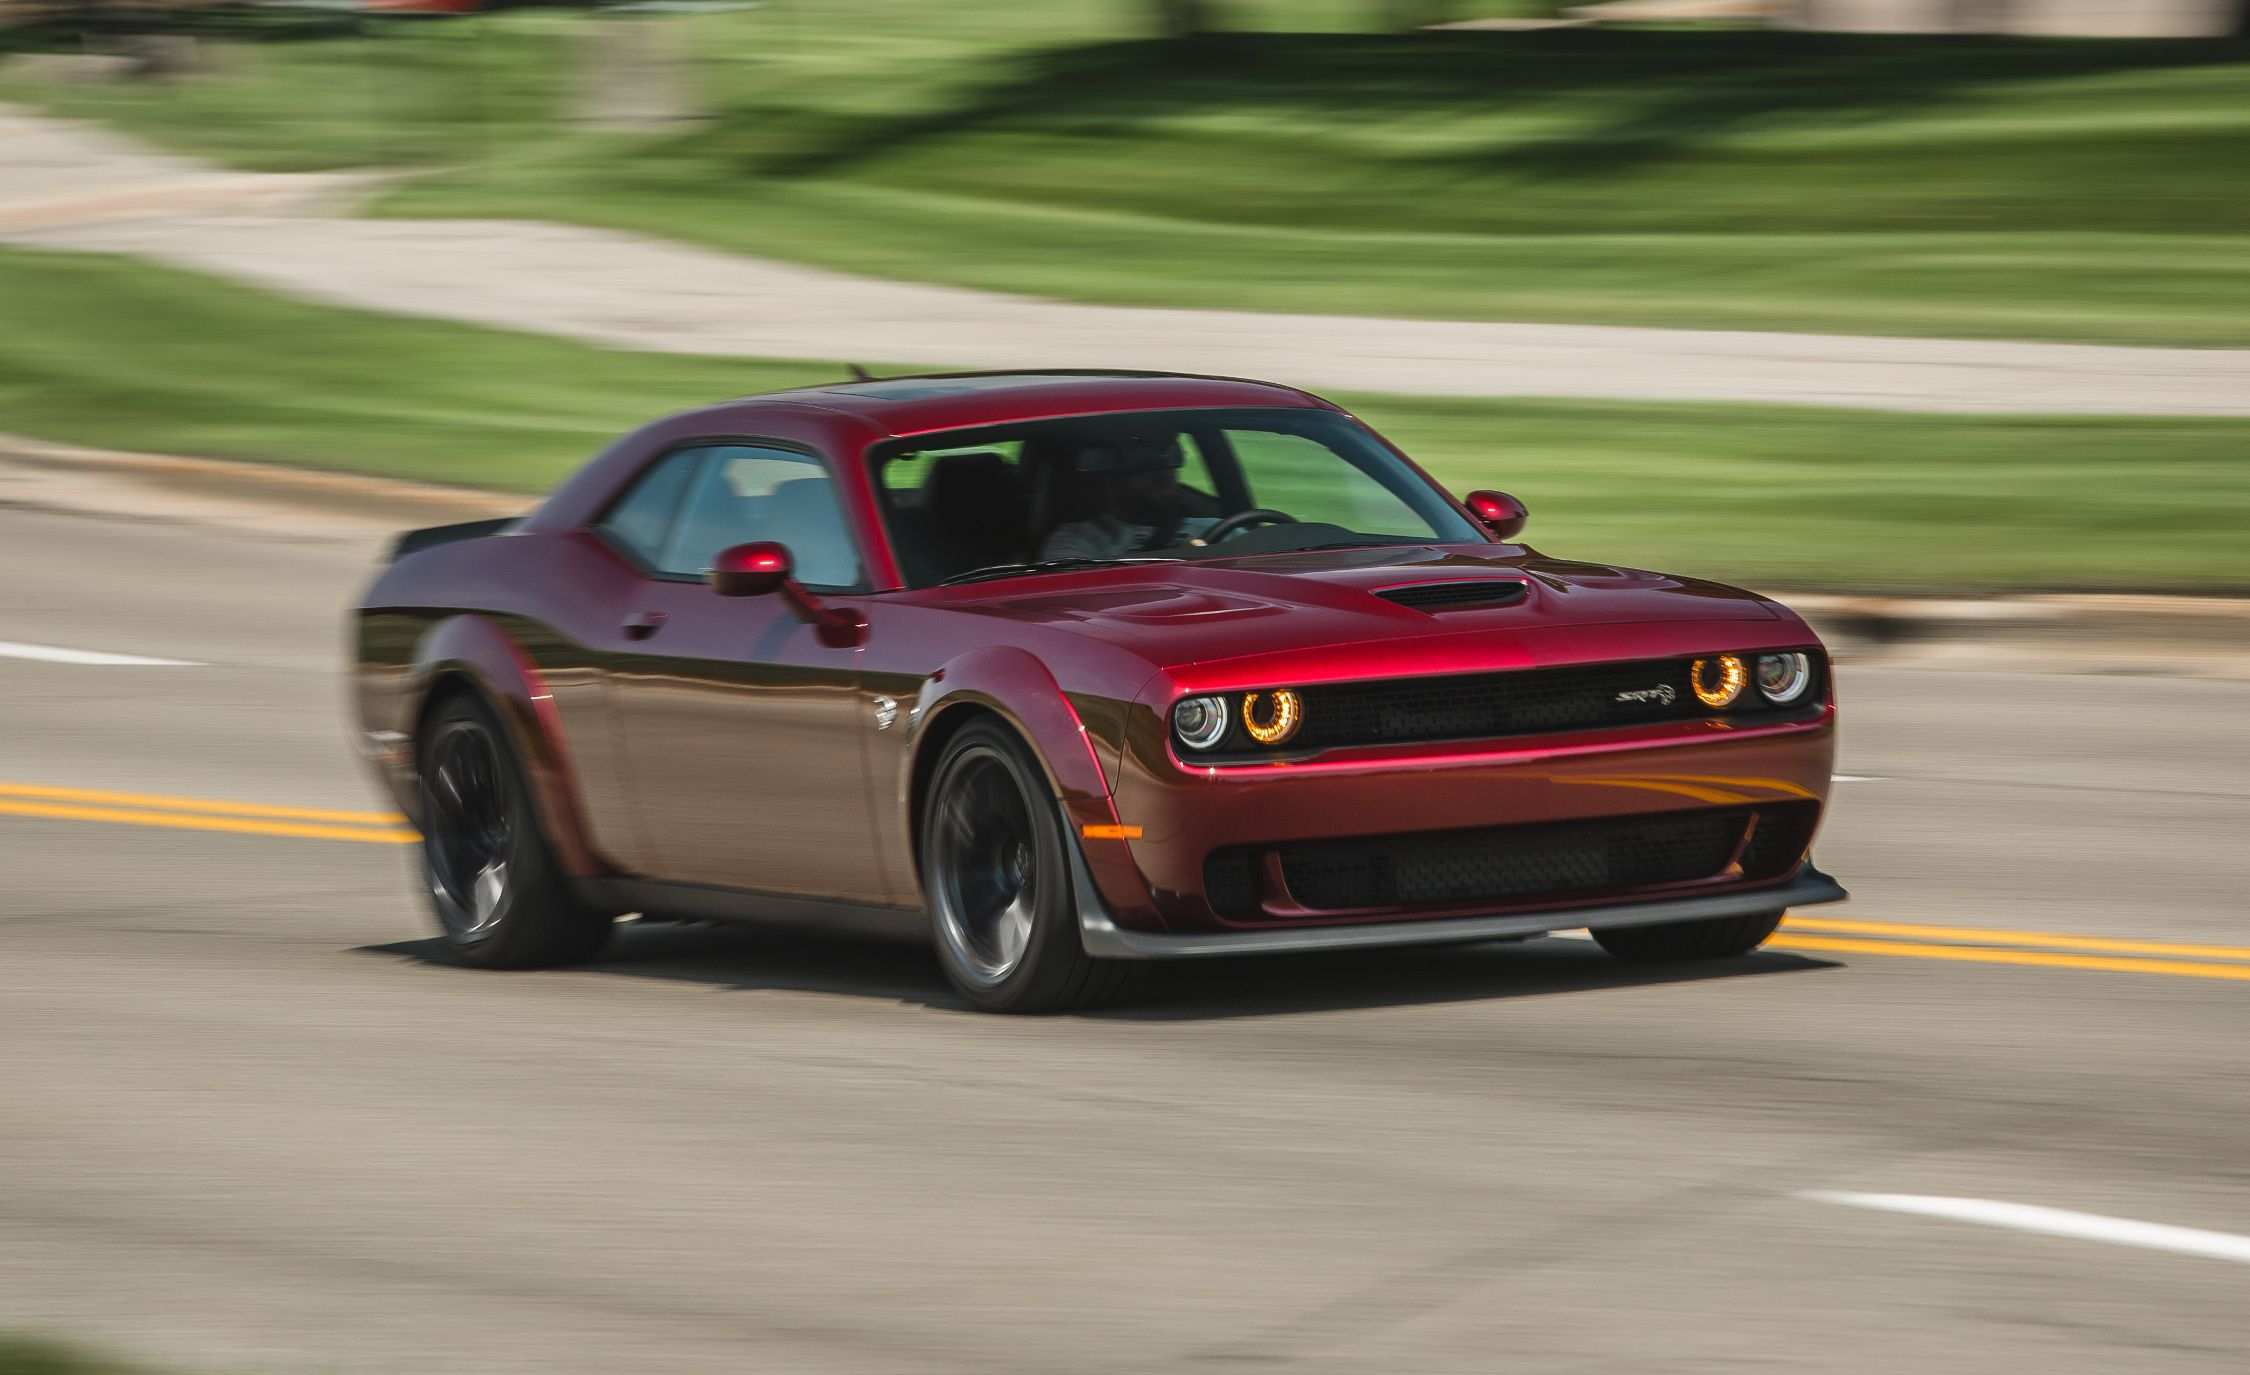 73 Concept of 2019 Dodge Hellcat Widebody Exterior and Interior with 2019 Dodge Hellcat Widebody